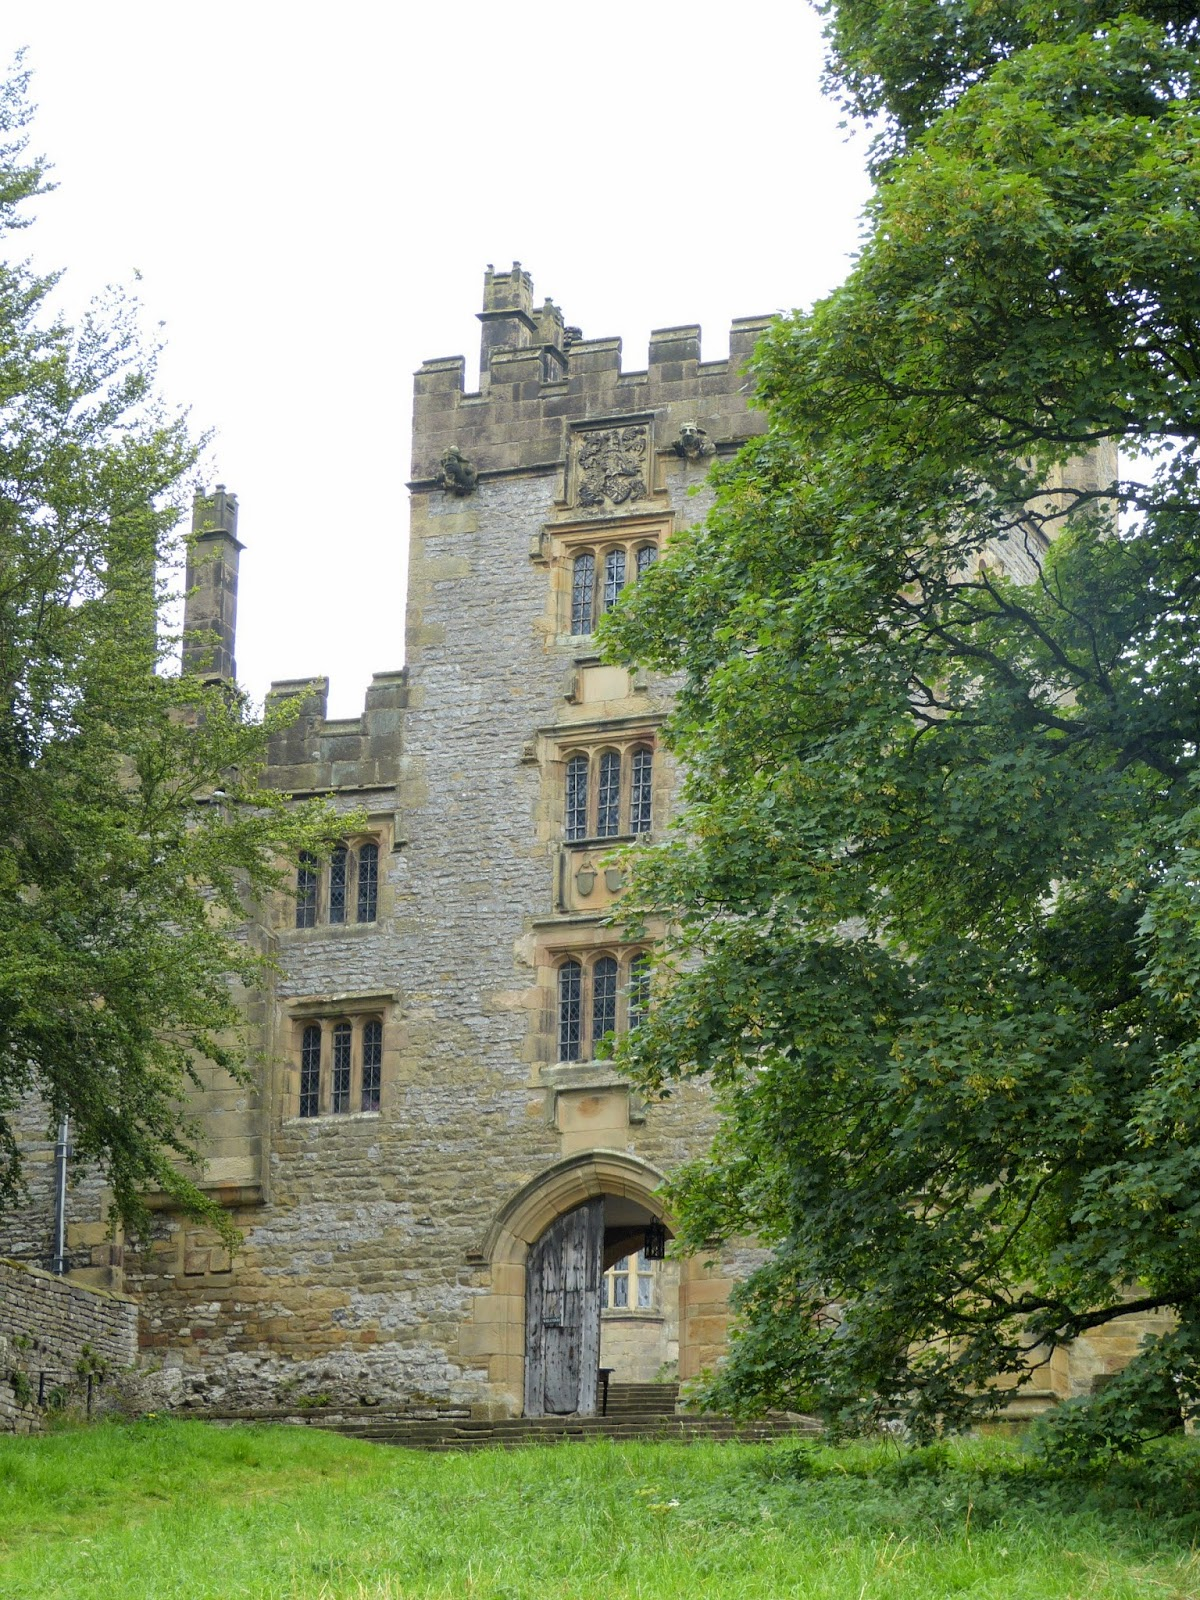 Entrance to Haddon Hall